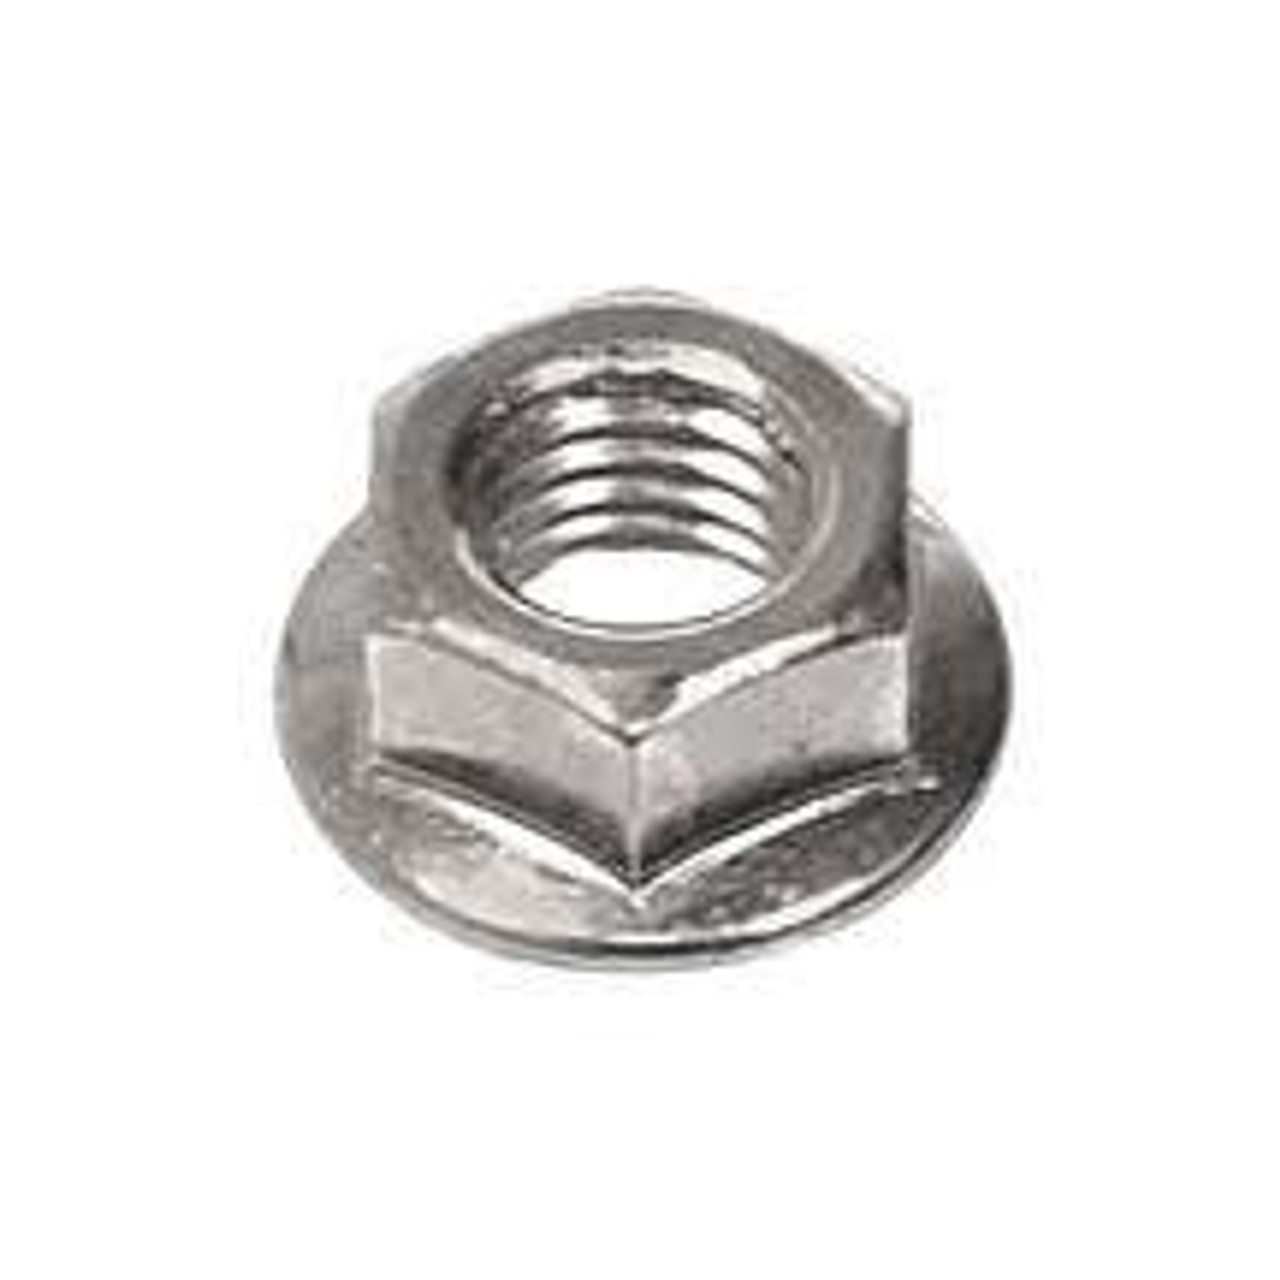 Long Eye Lifting Bolt with Nylon Lock Nuts Serrated Hex Nut Stainless Steel